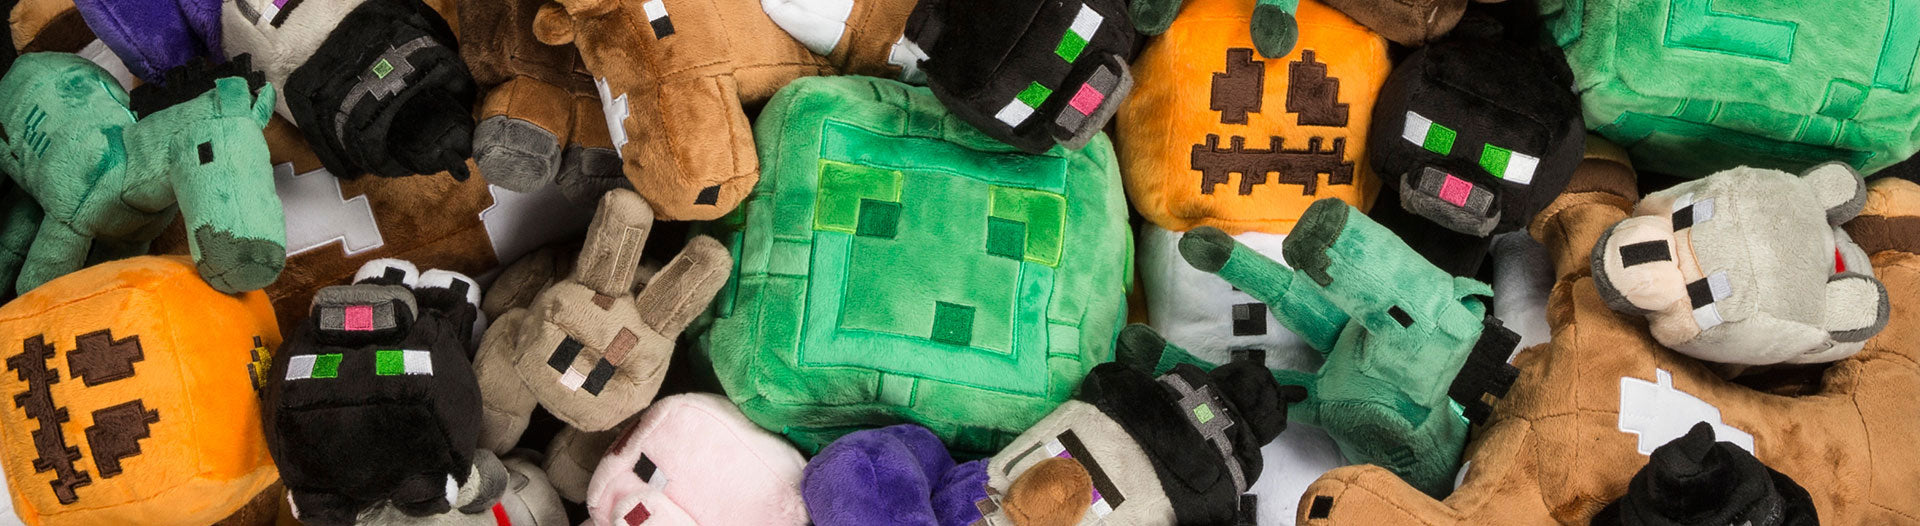 Assorted Minecraft plush toys